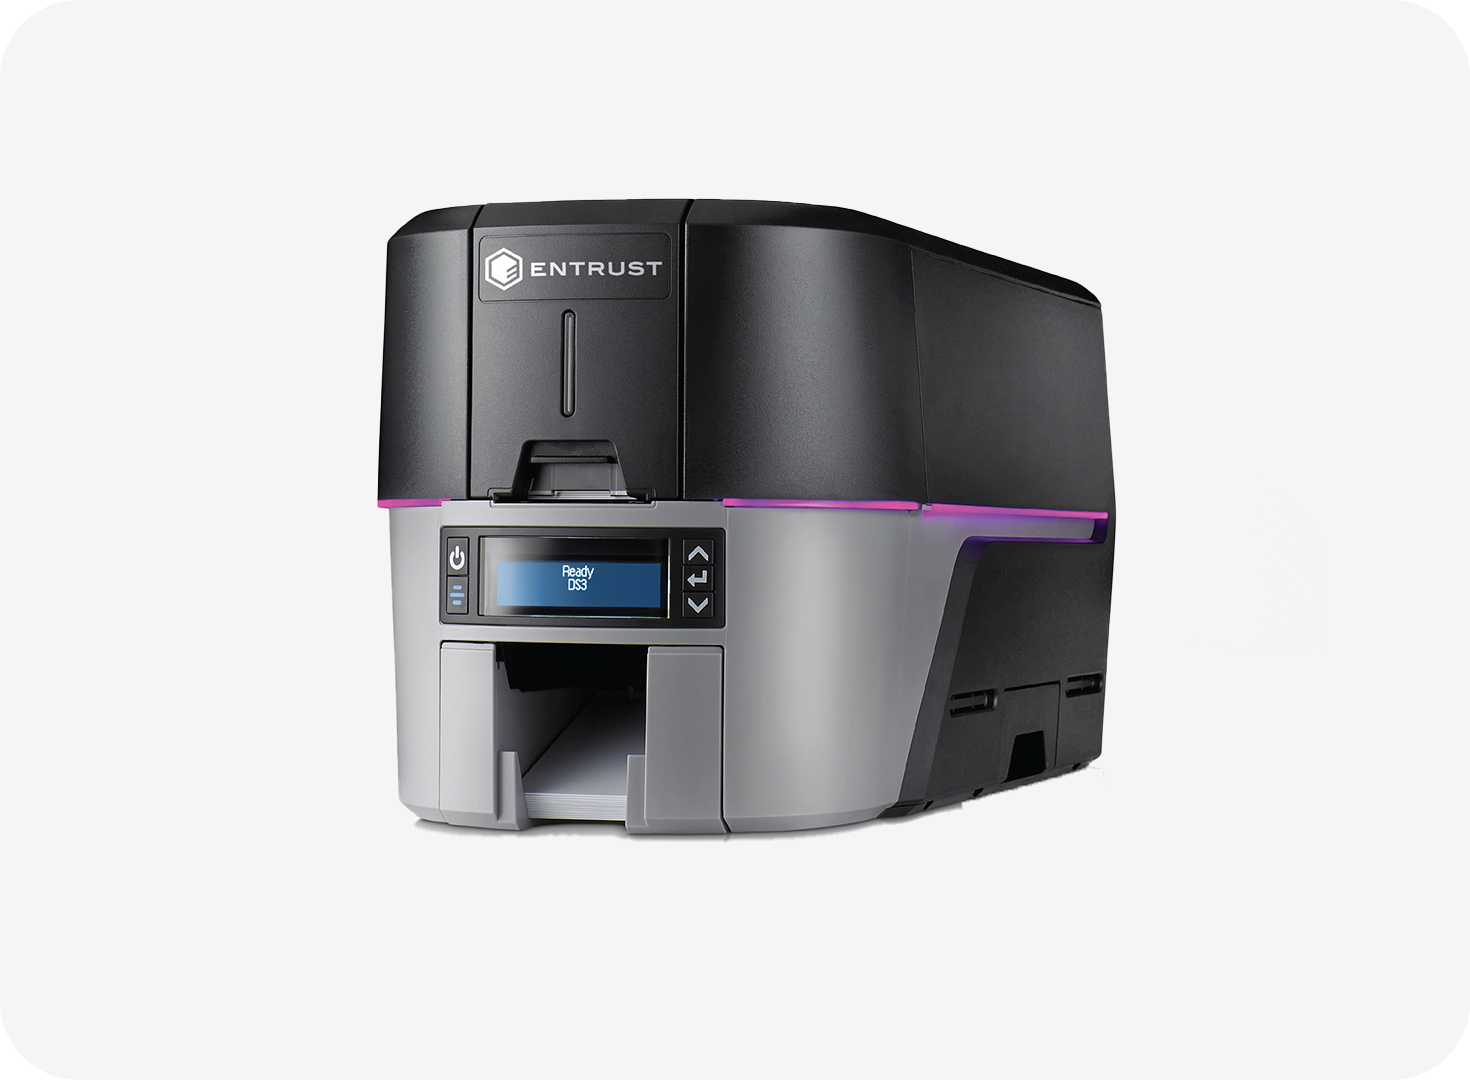 Entrust Sigma DS3 Direct to Card Printer